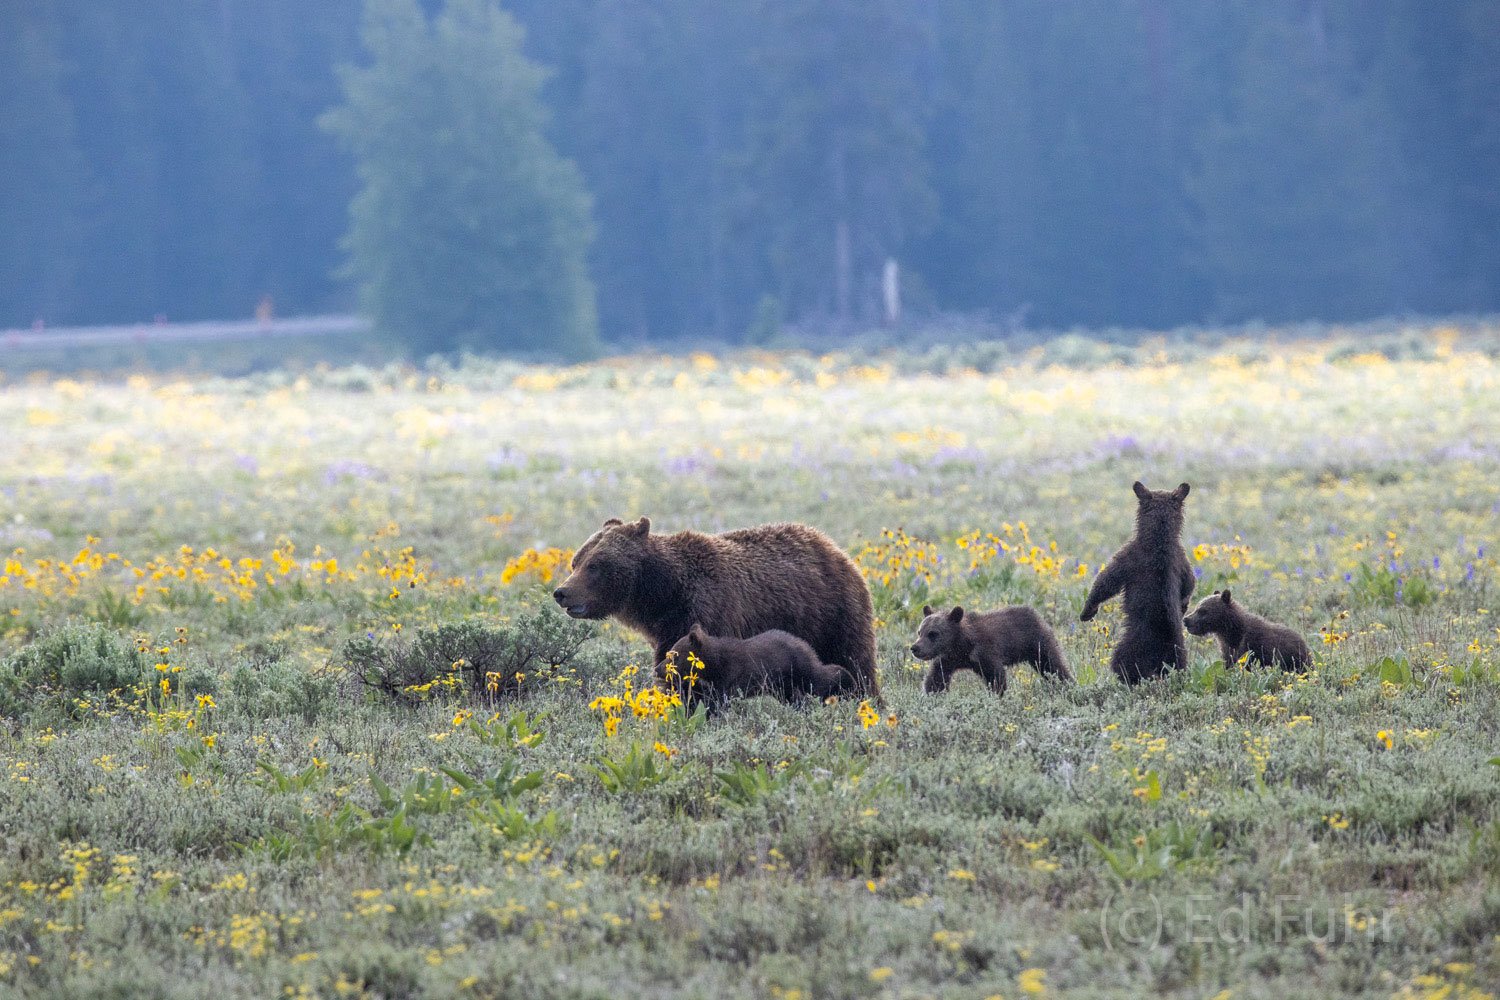 Grizzly 399 leads her cubs away from the meadow when a young male grizzly has approached too close.